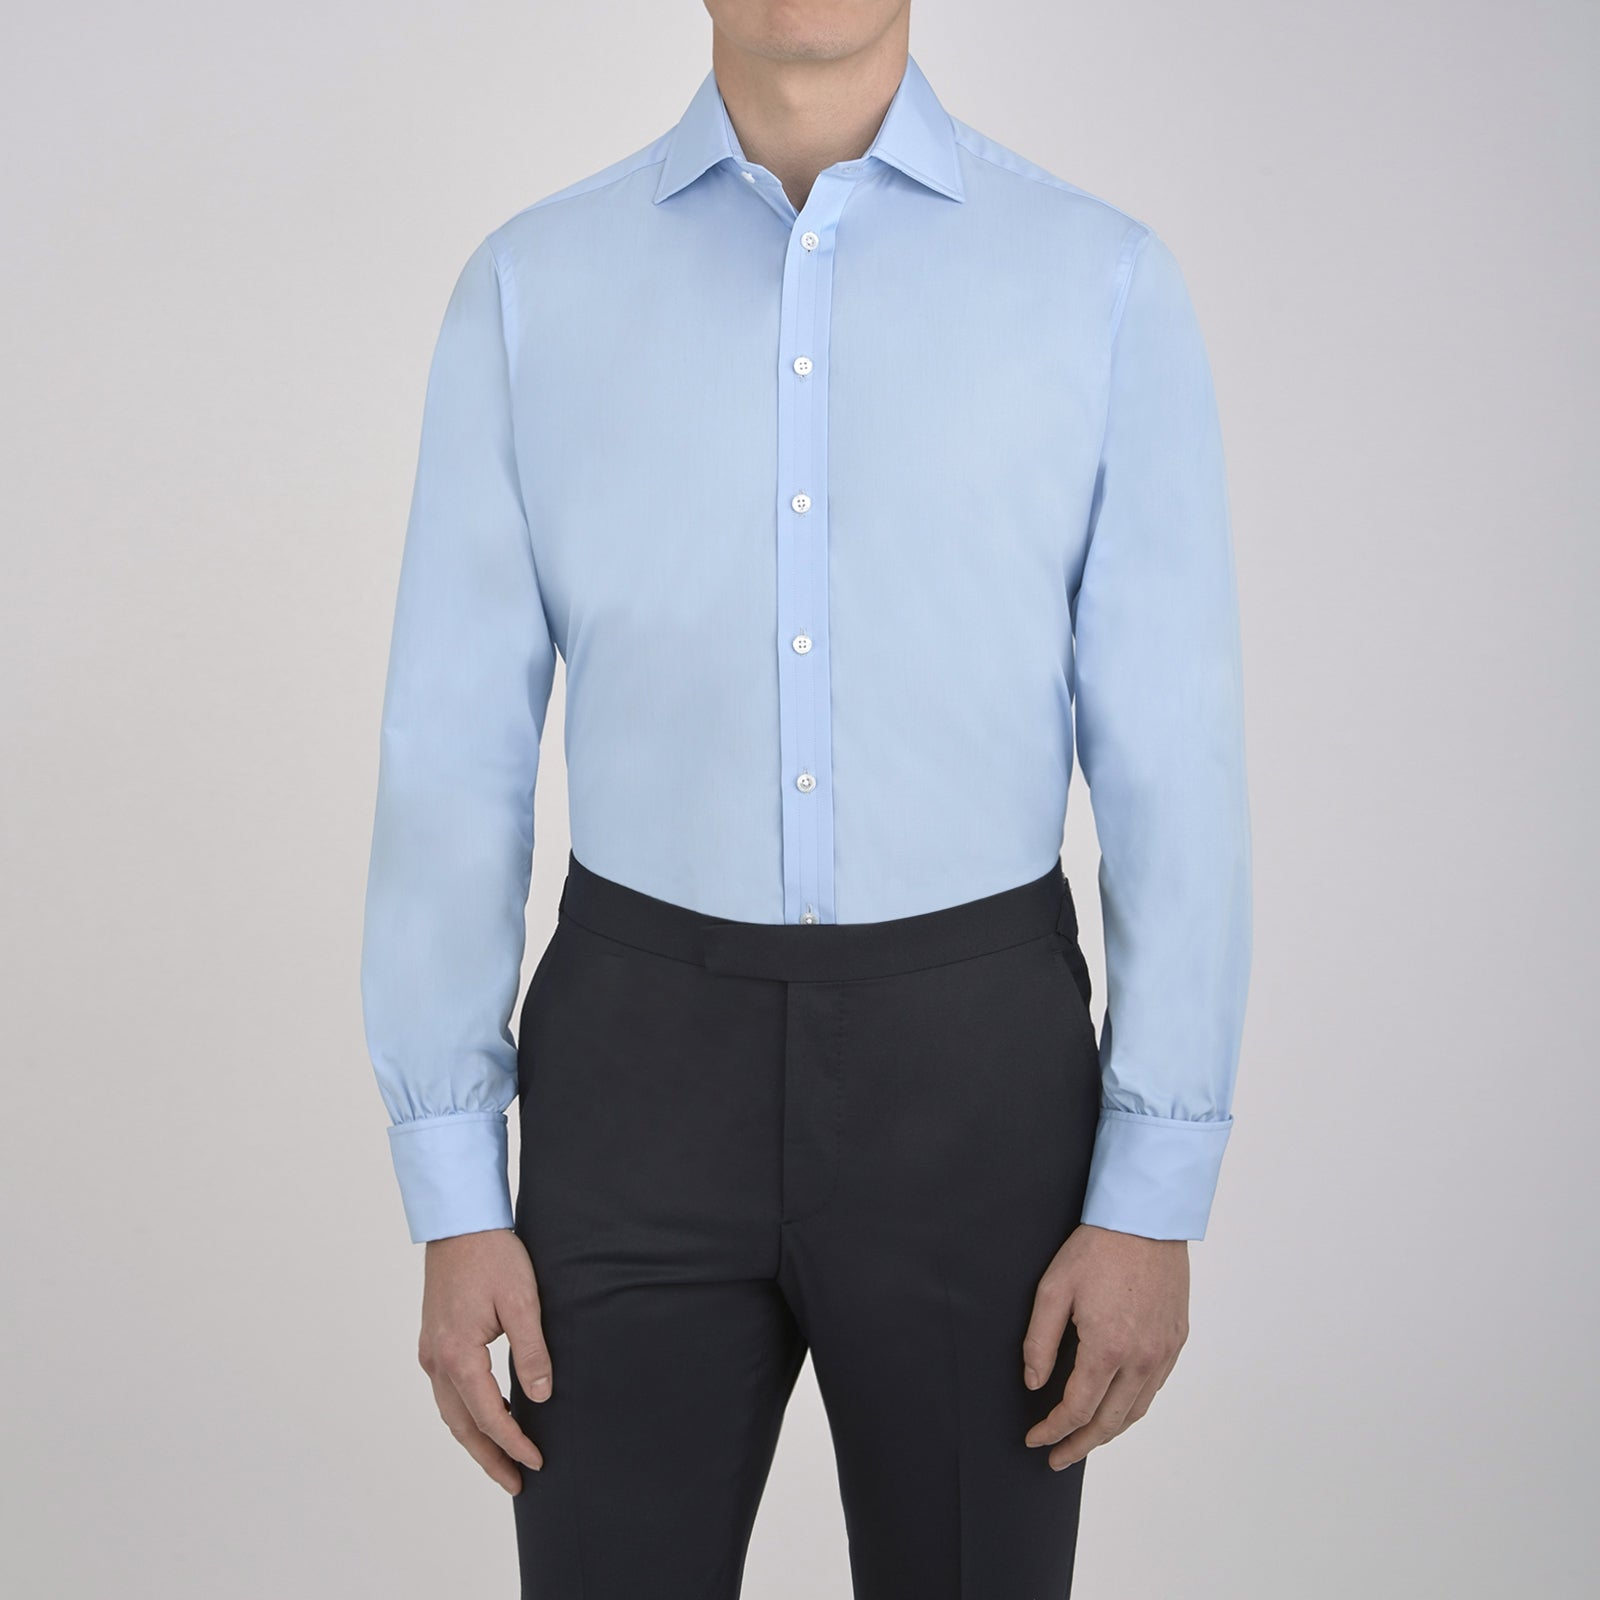 The Dr No Blue Cotton Shirt as seen on James Bond